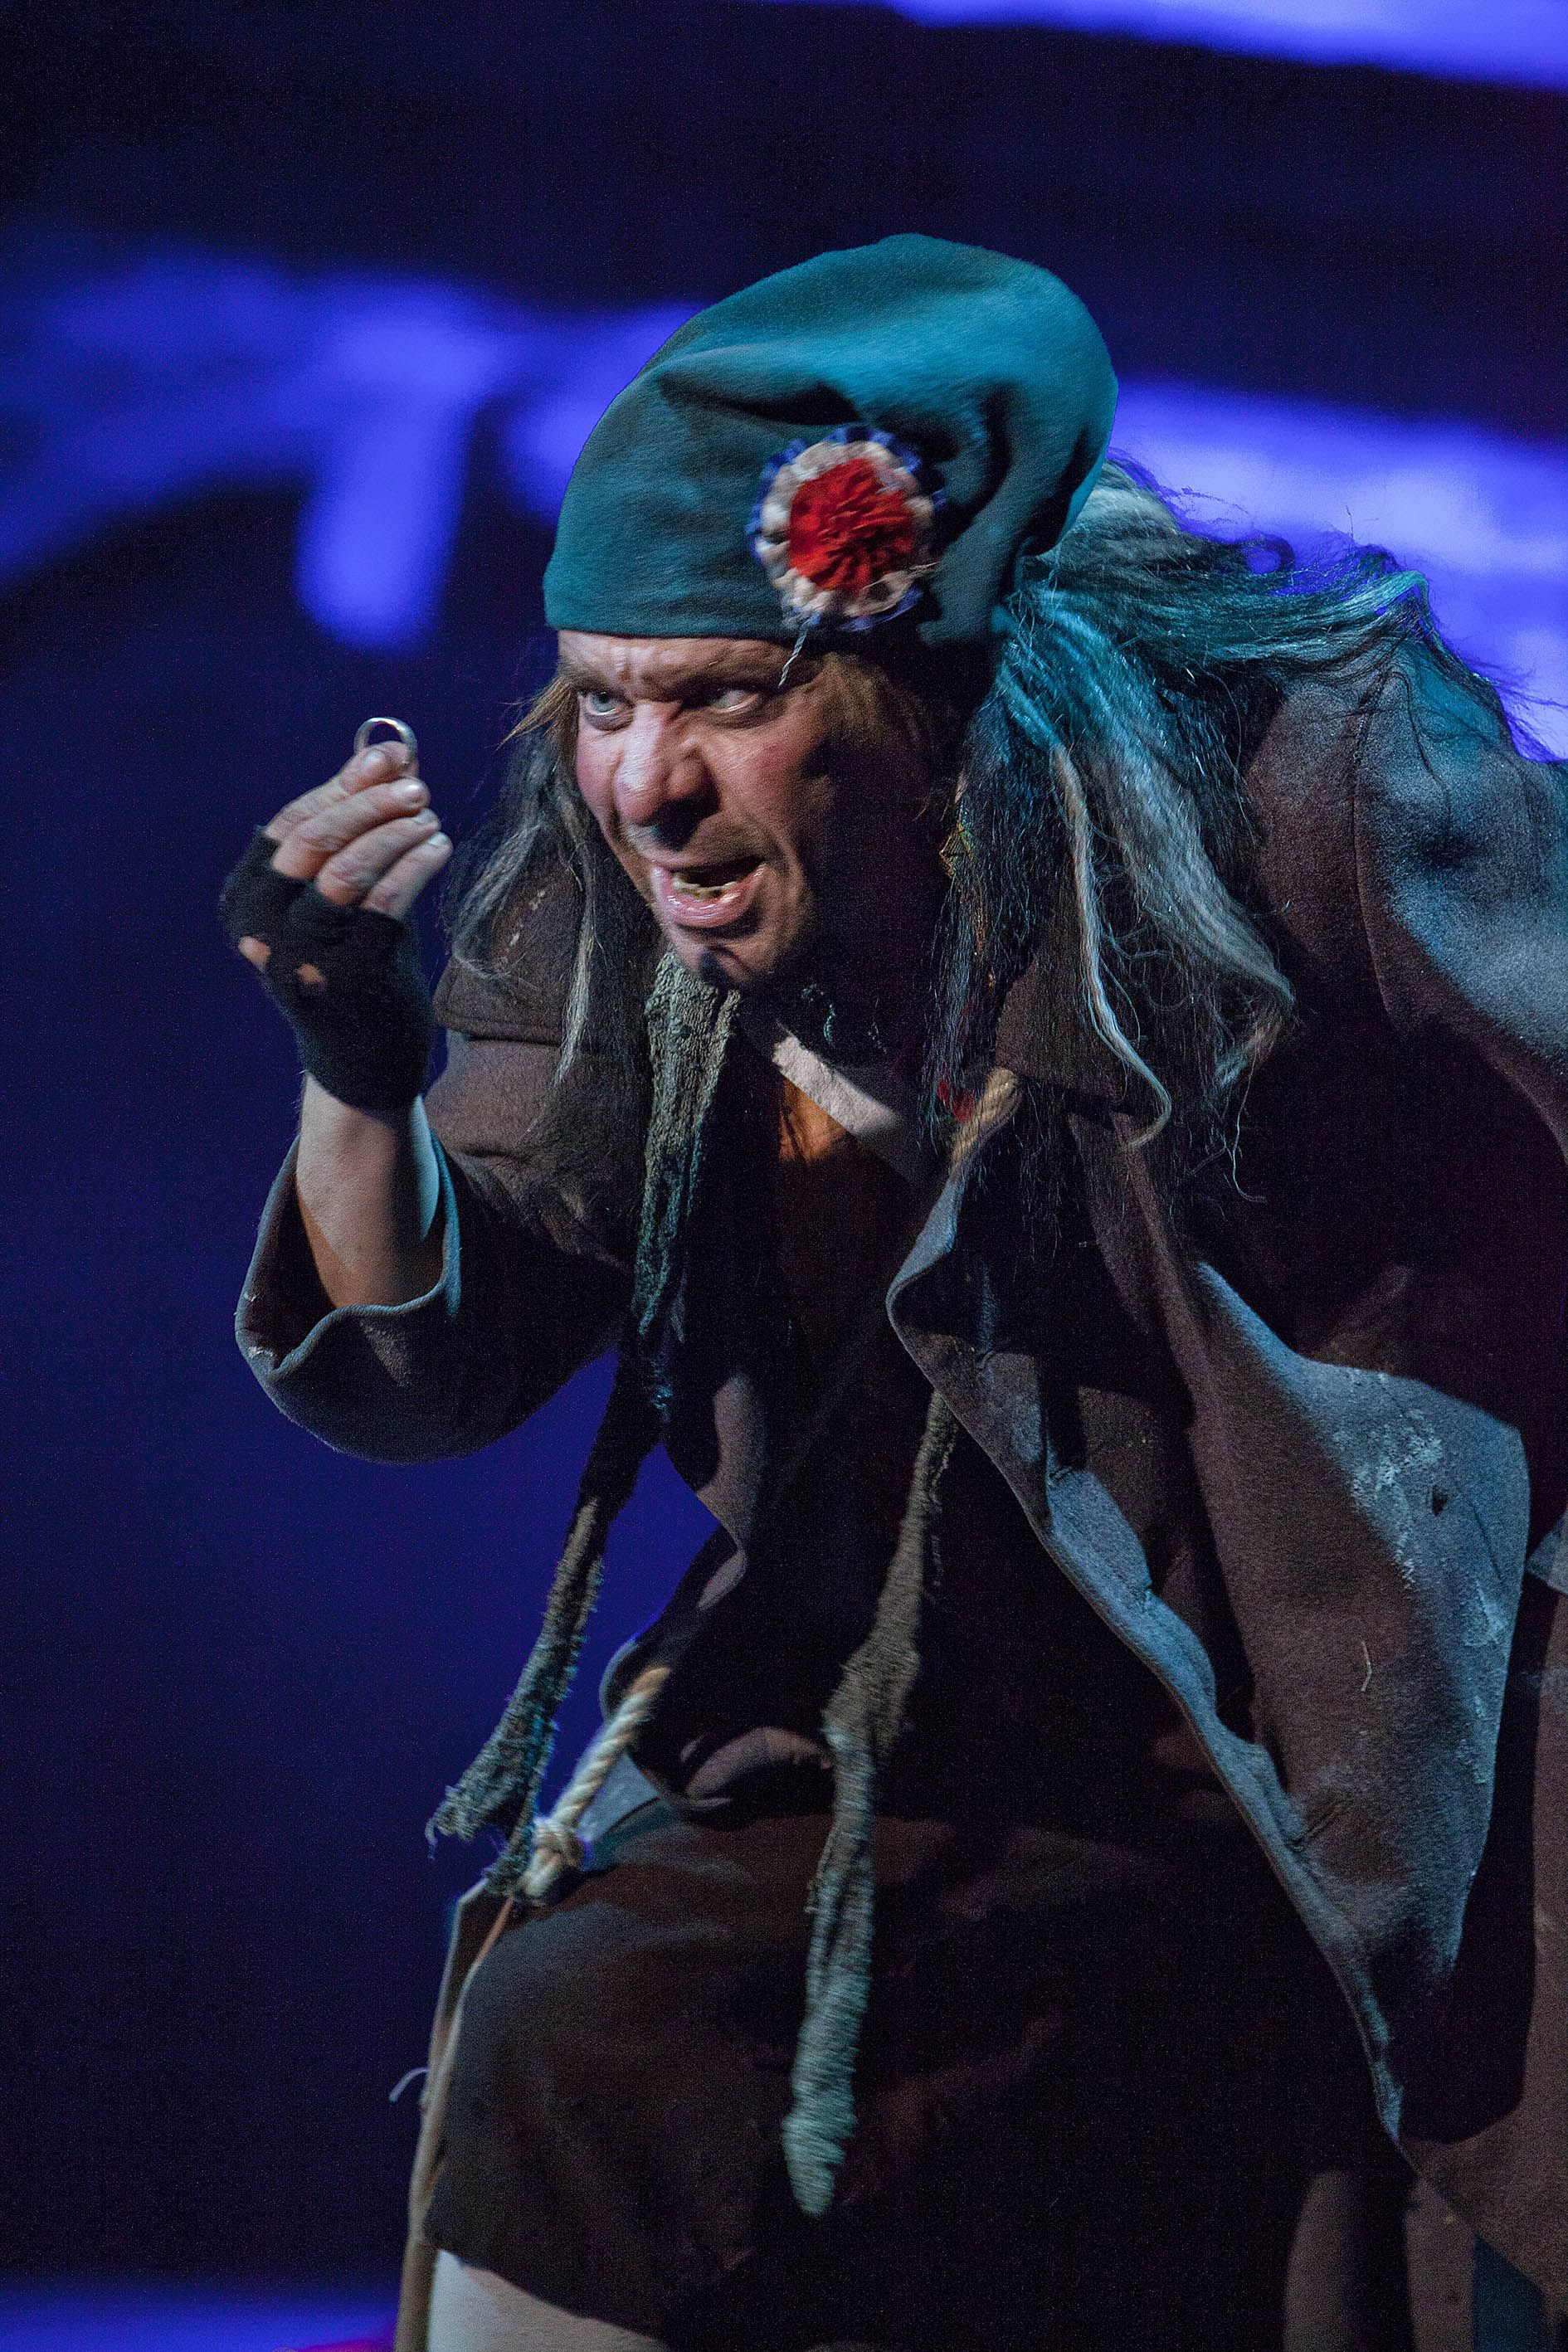 Les Misérables, Tampereen Teatteri: Risto Korhonen (Thénardier). Photo: Harri Hinkka